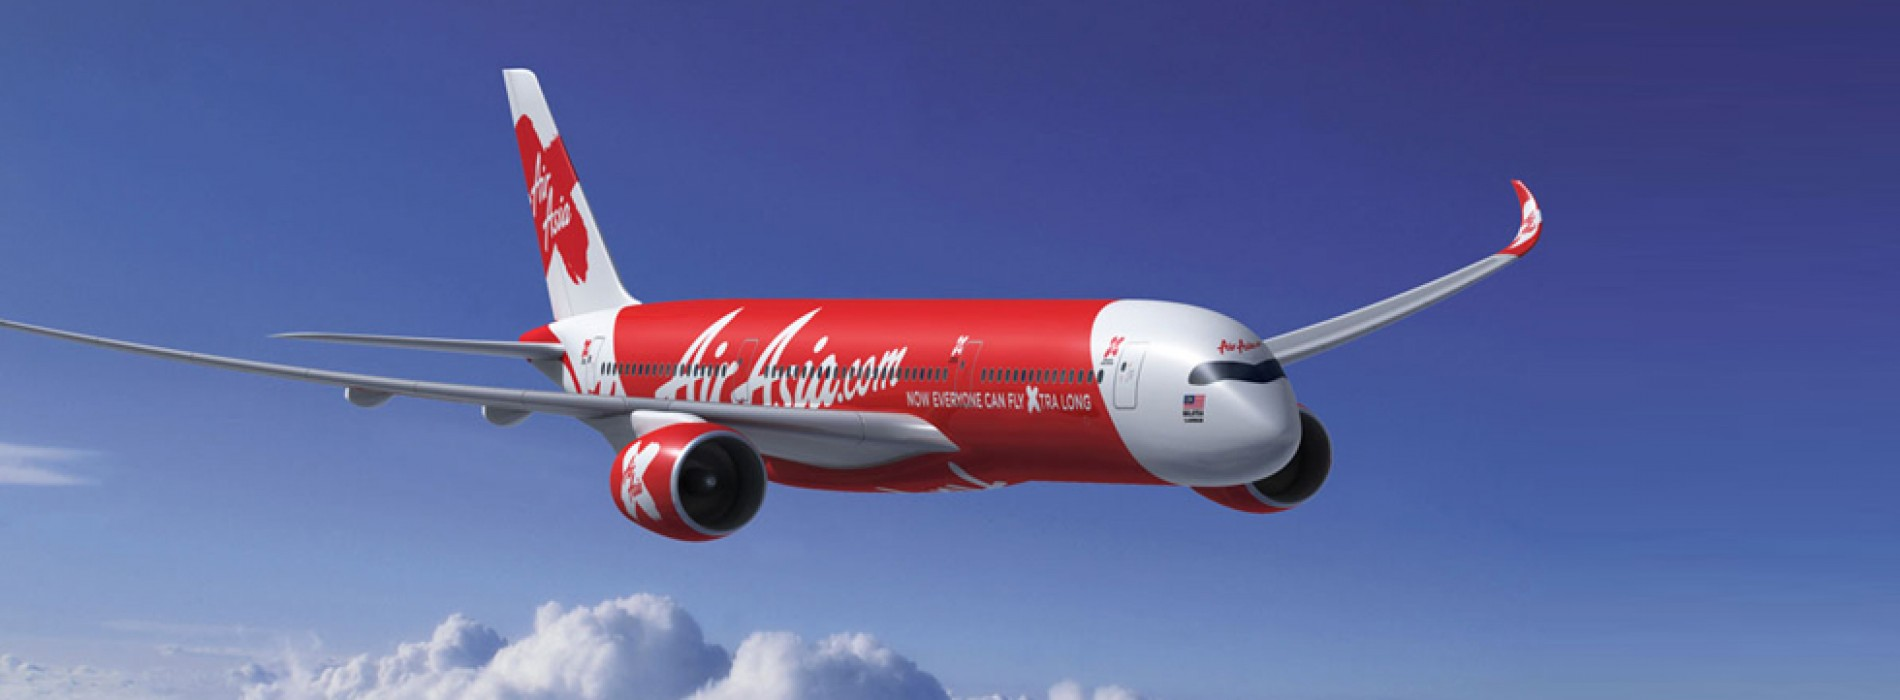 AirAsia India Flight Ticket offers for 2018